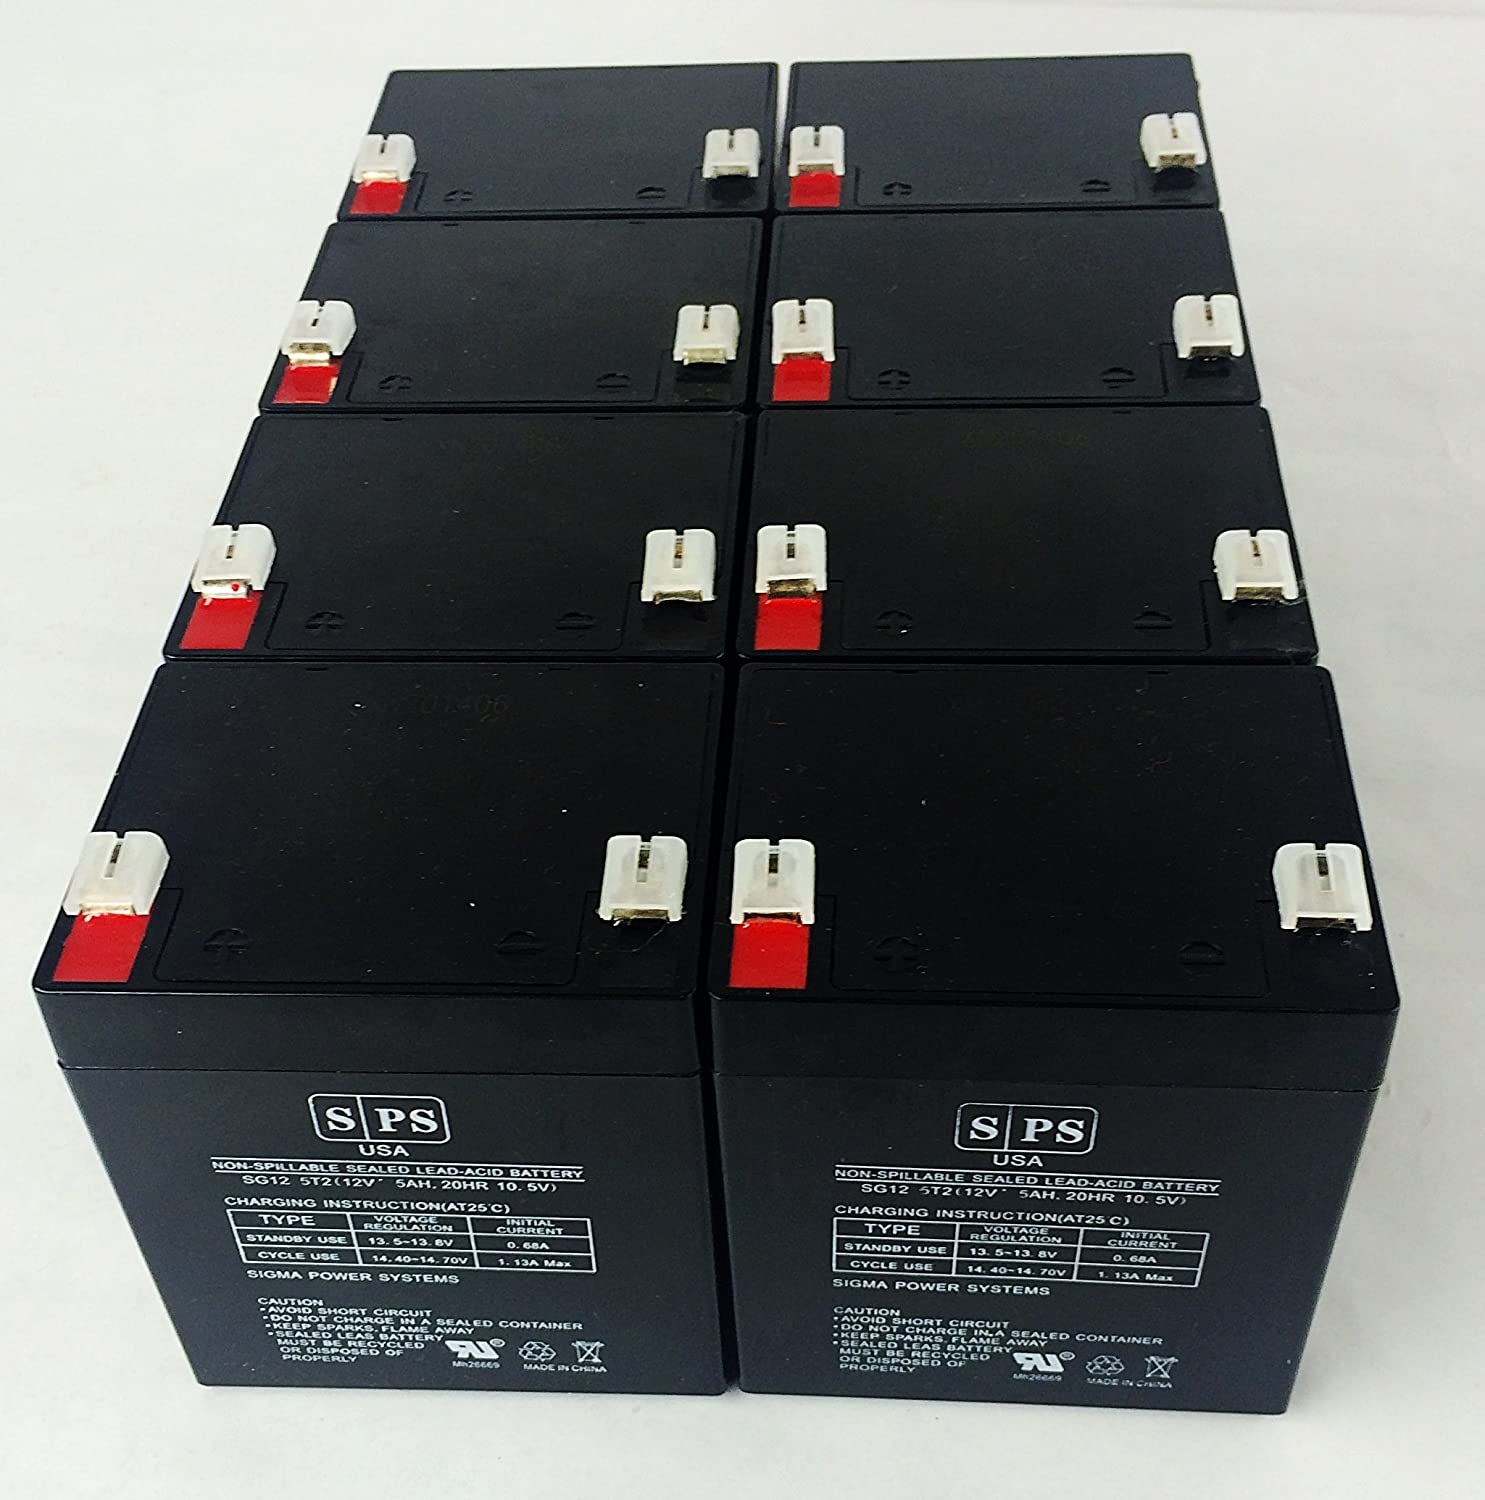 12V 5Ah Genesis Np5-12T, Np 5-12T .250 Terminal Ups Replacement Battery Sps Brand (8 Pack)